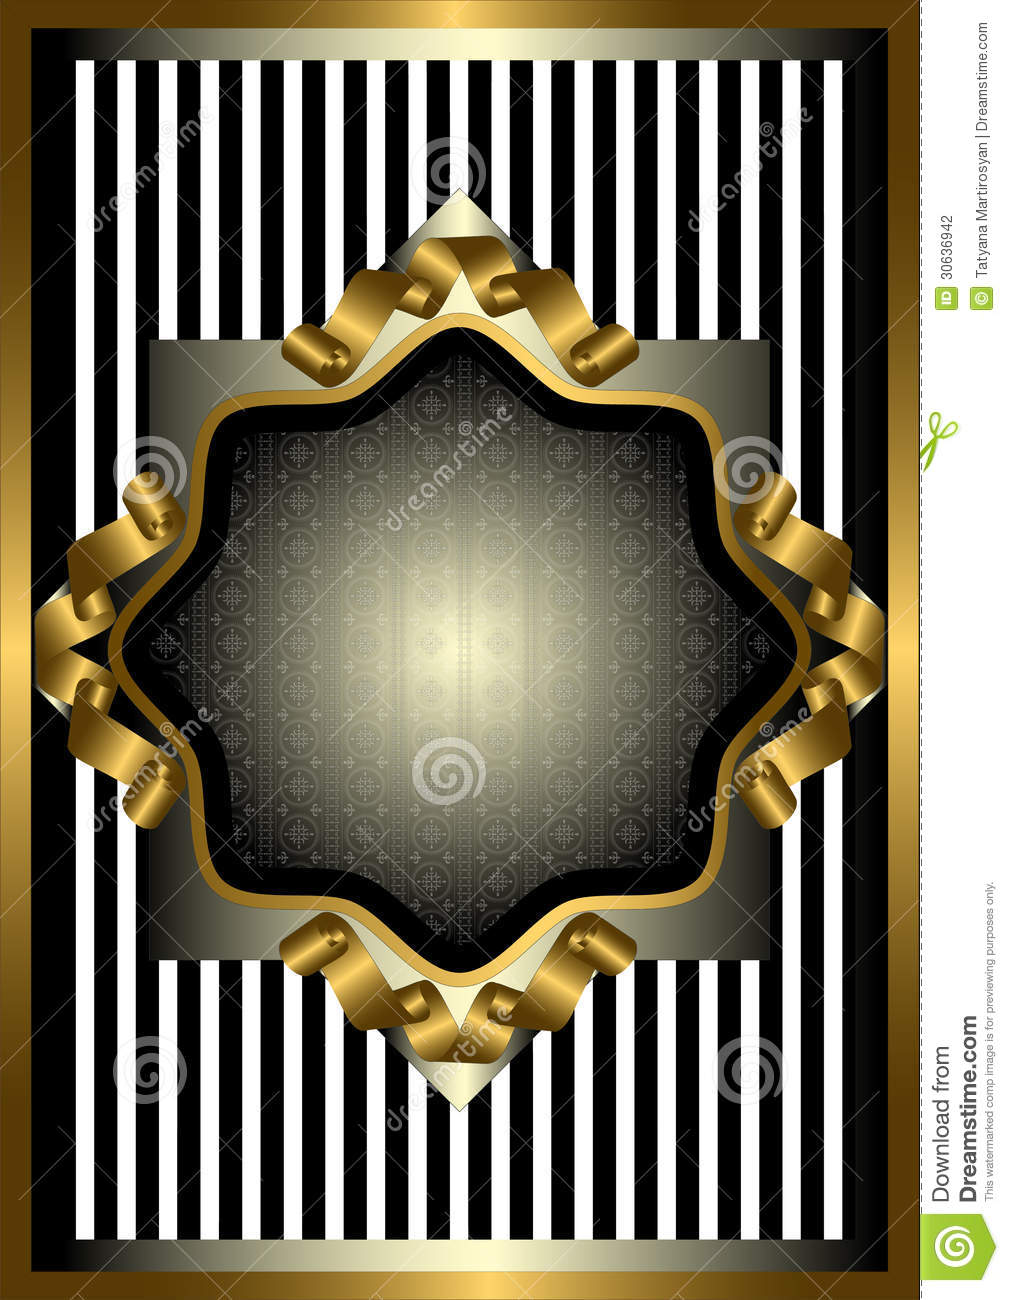 Silver frame with gold decor on striped background stock vector silver frame with gold decor on striped background jeuxipadfo Image collections